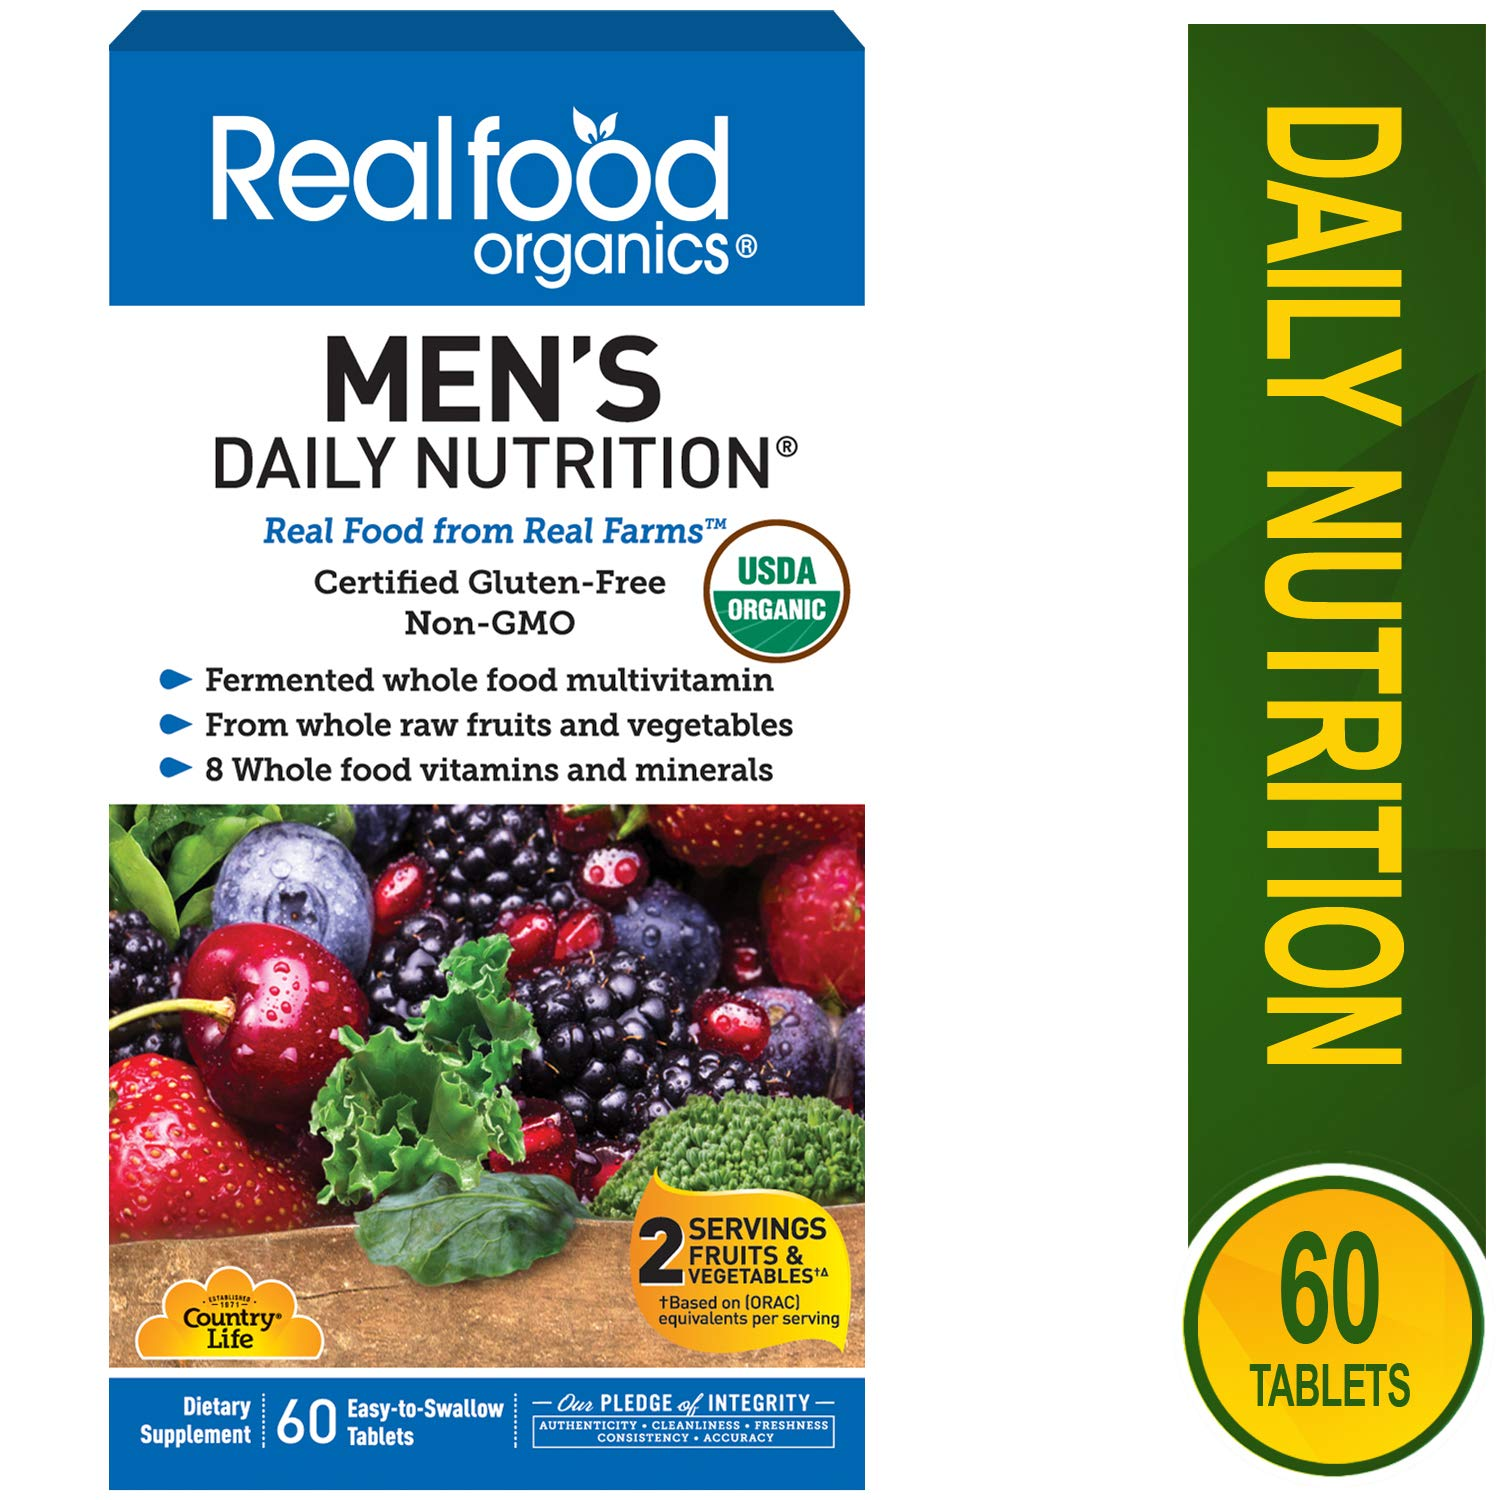 Country Life Realfood Organics Men s Daily Nutrition – 60 Tablets